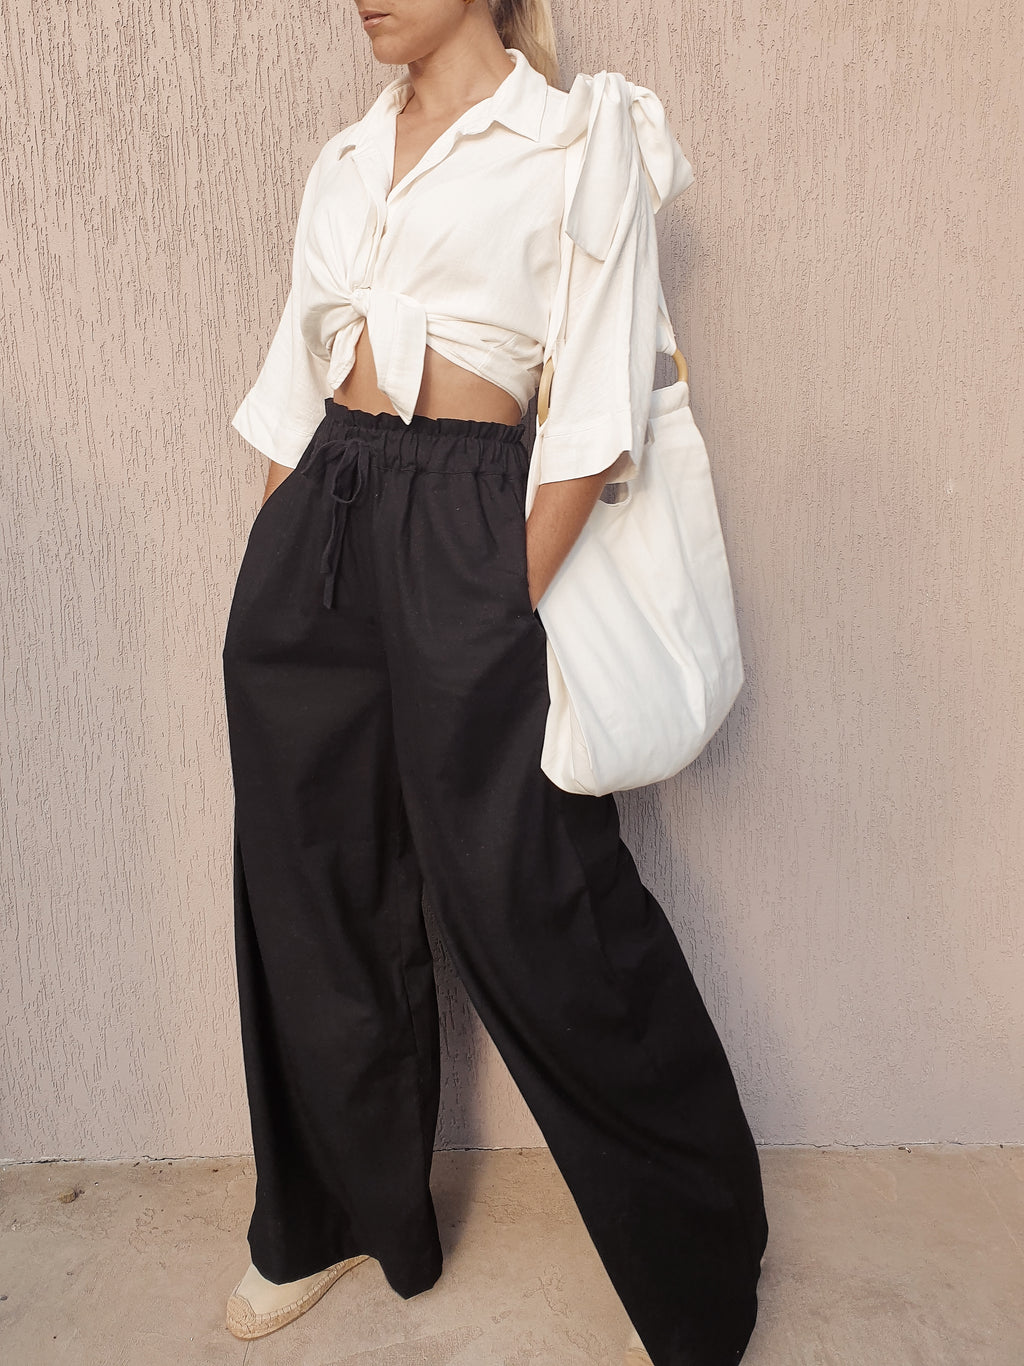 Beau Linen High Waist Pants ~ Black